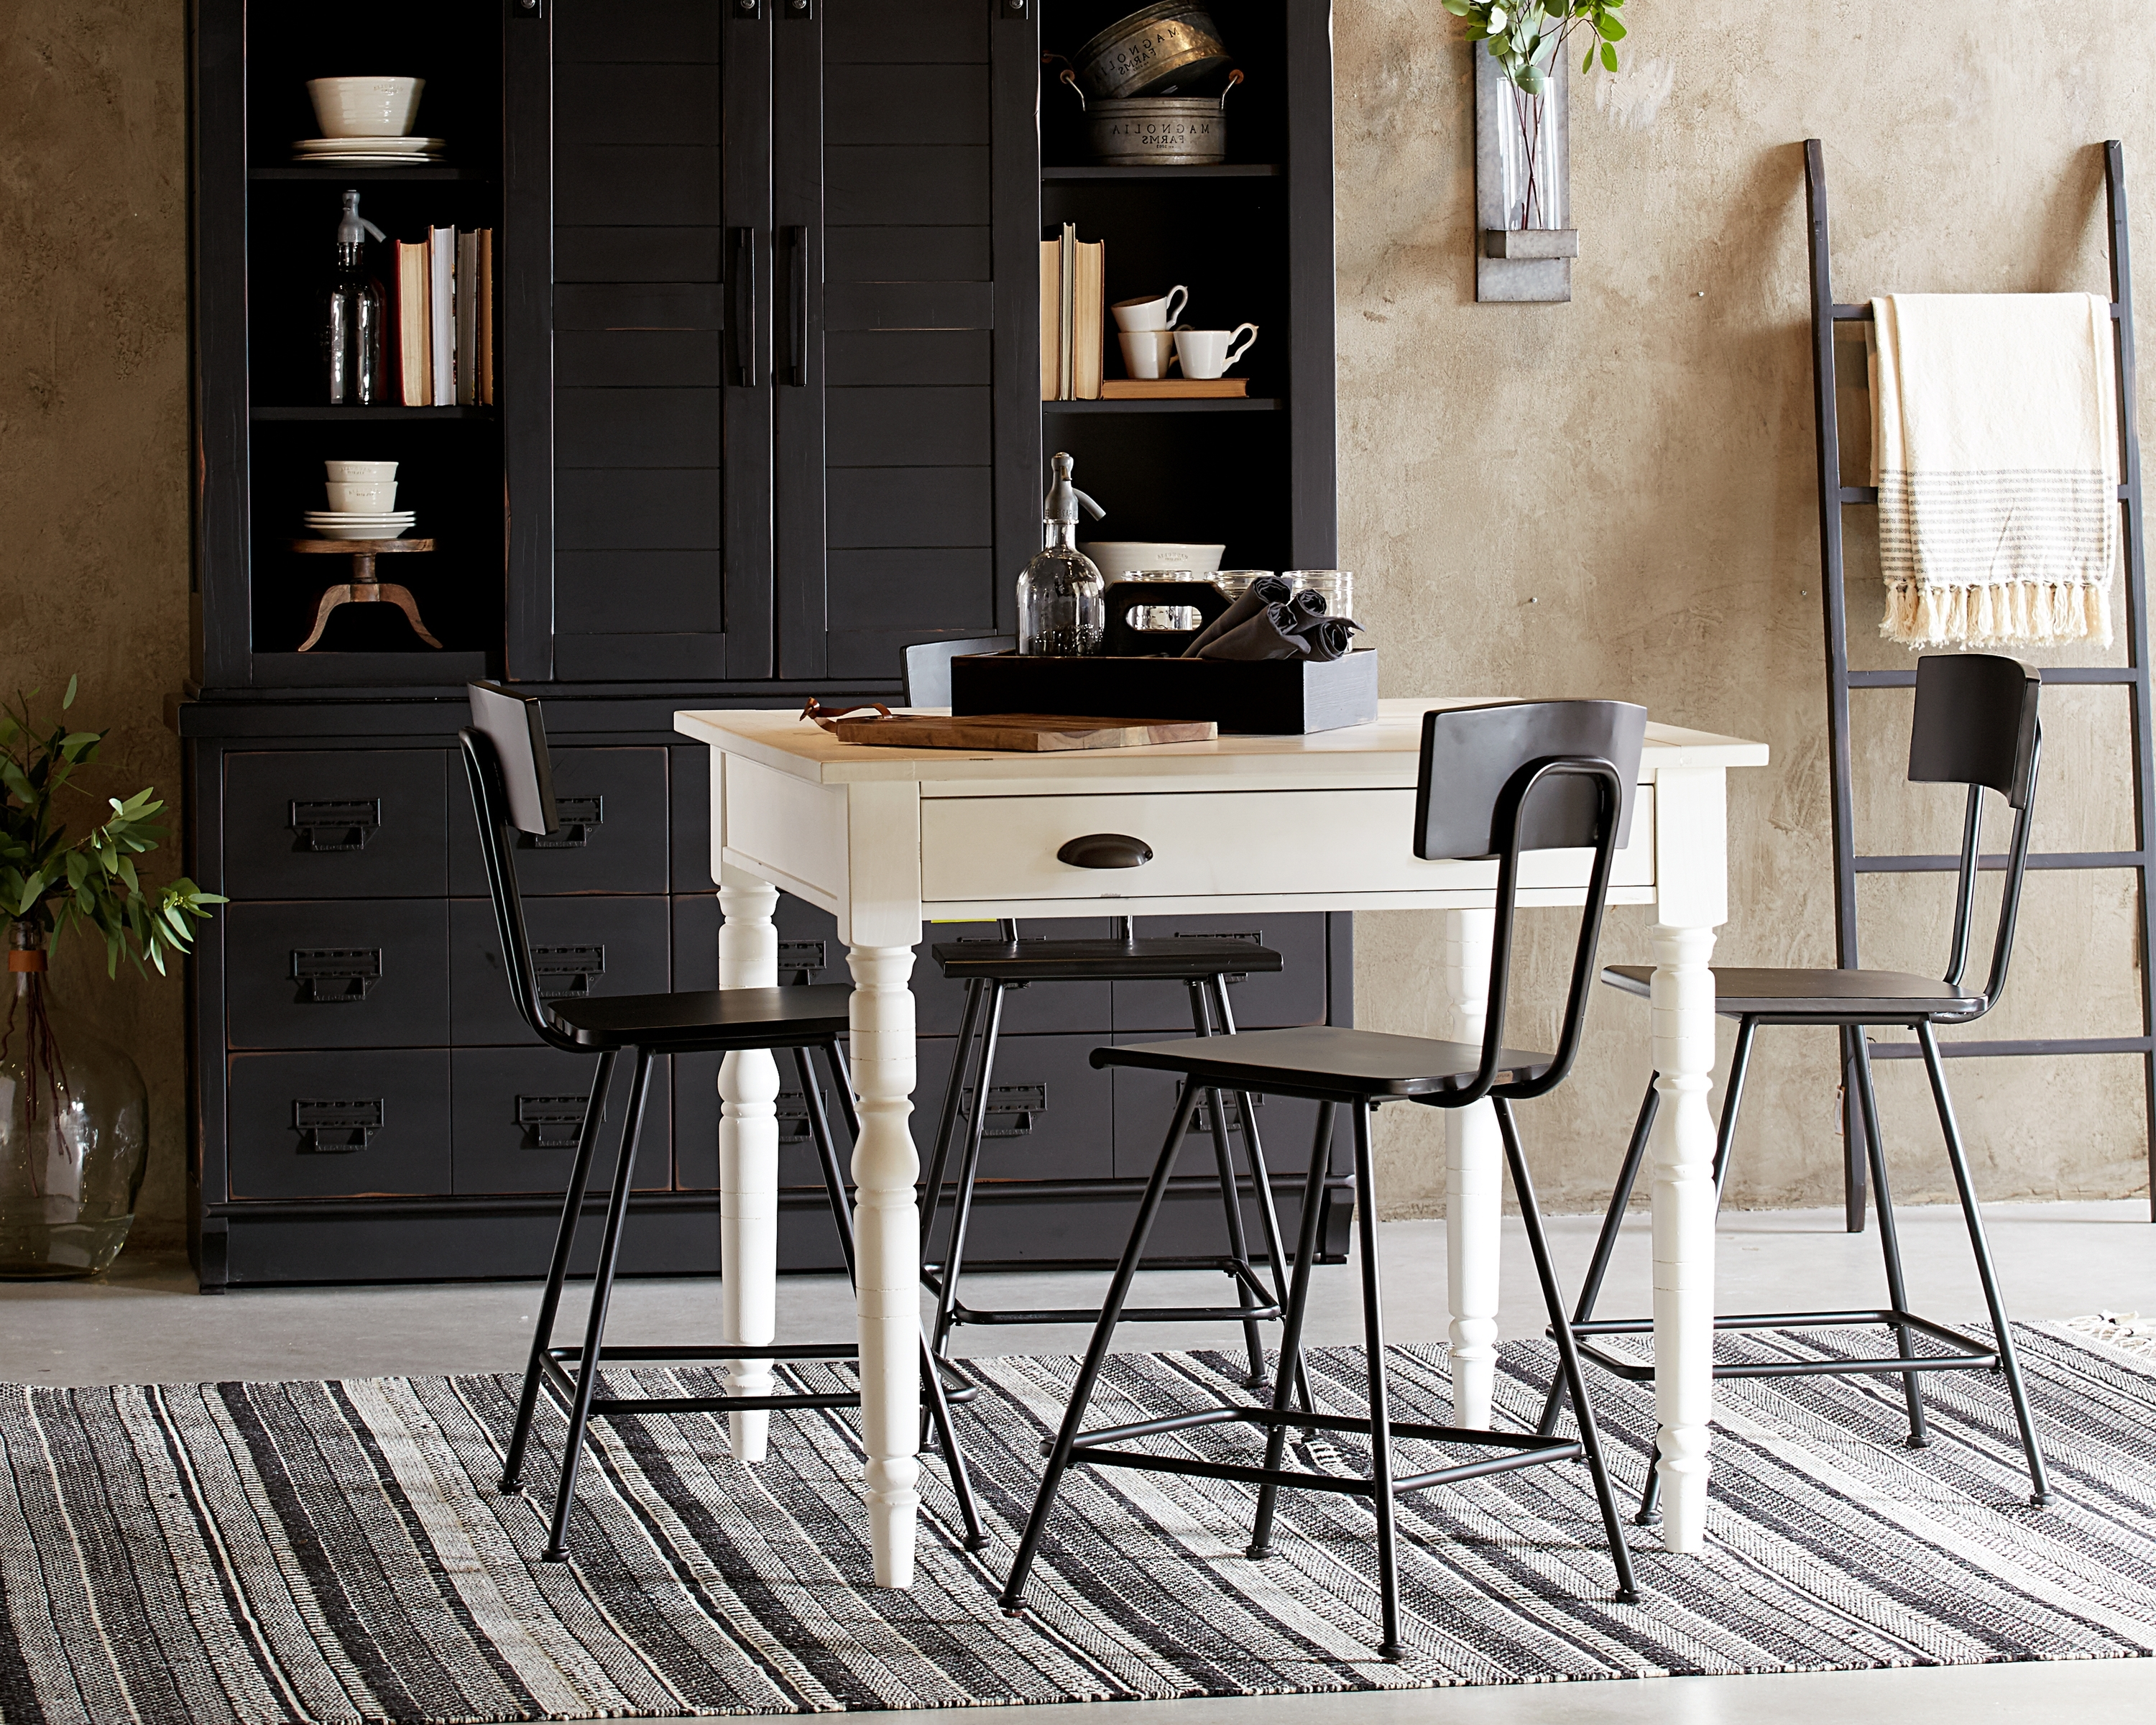 Fashionable Taper Turned Gathering Table – Magnolia Home With Magnolia Home Taper Turned Bench Gathering Tables With Zinc Top (View 2 of 25)